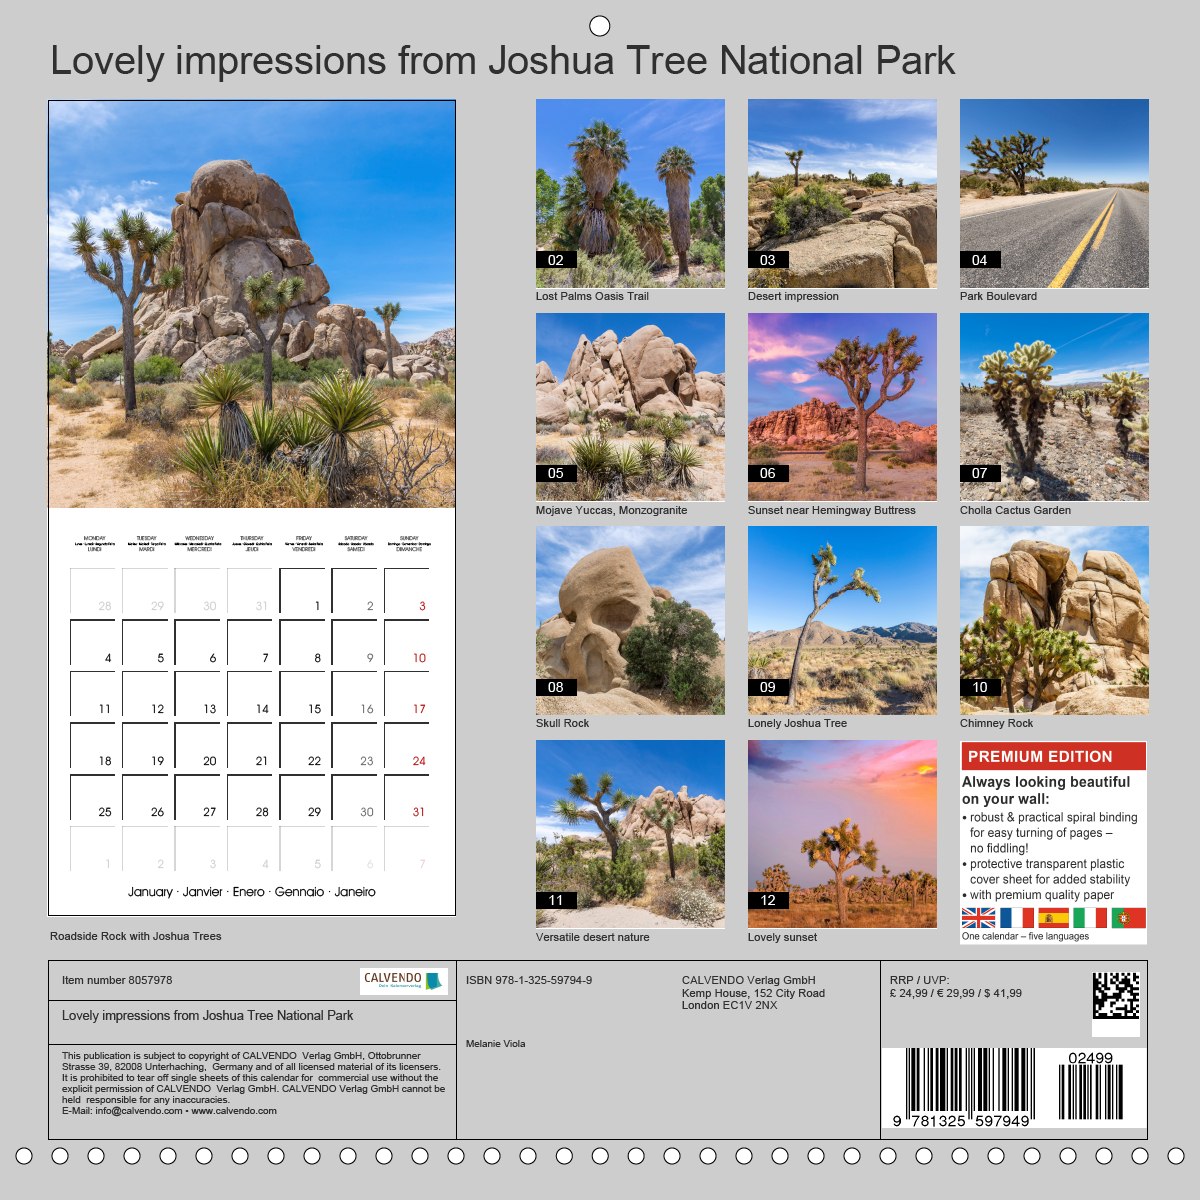 Calendar back - Lovely impressions from Joshua Tree National Park